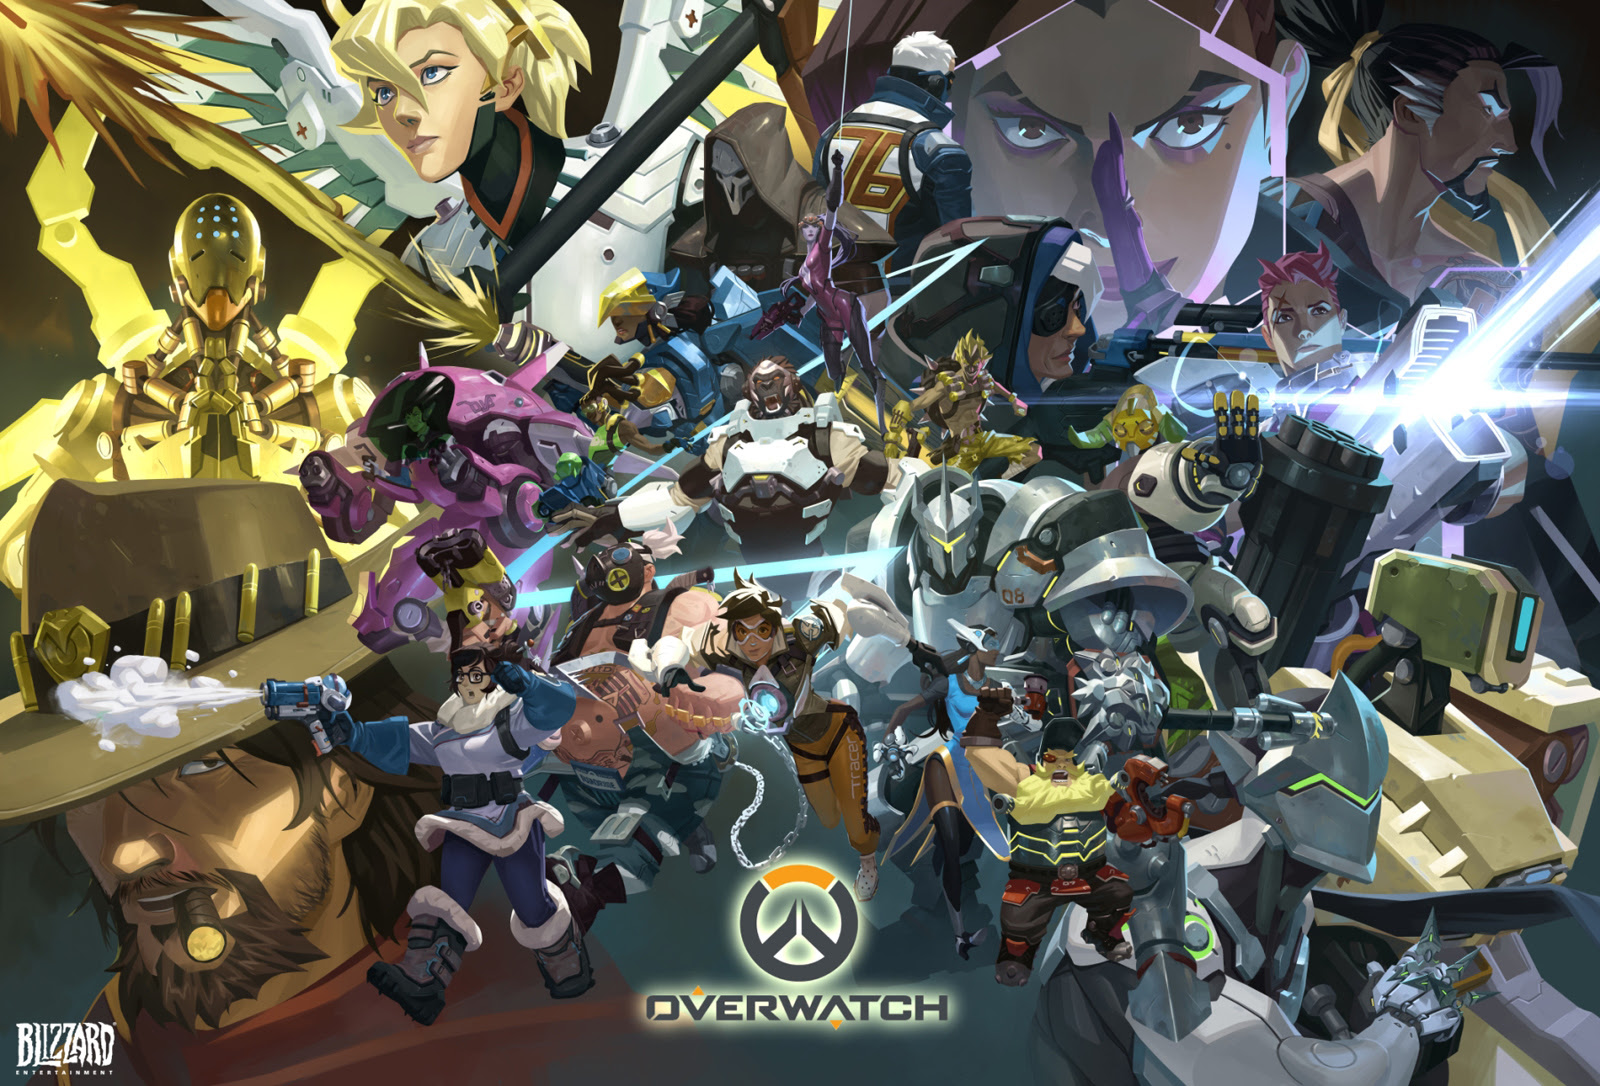 Overwatch anniversary event and Game of the Year Edition incoming screenshot